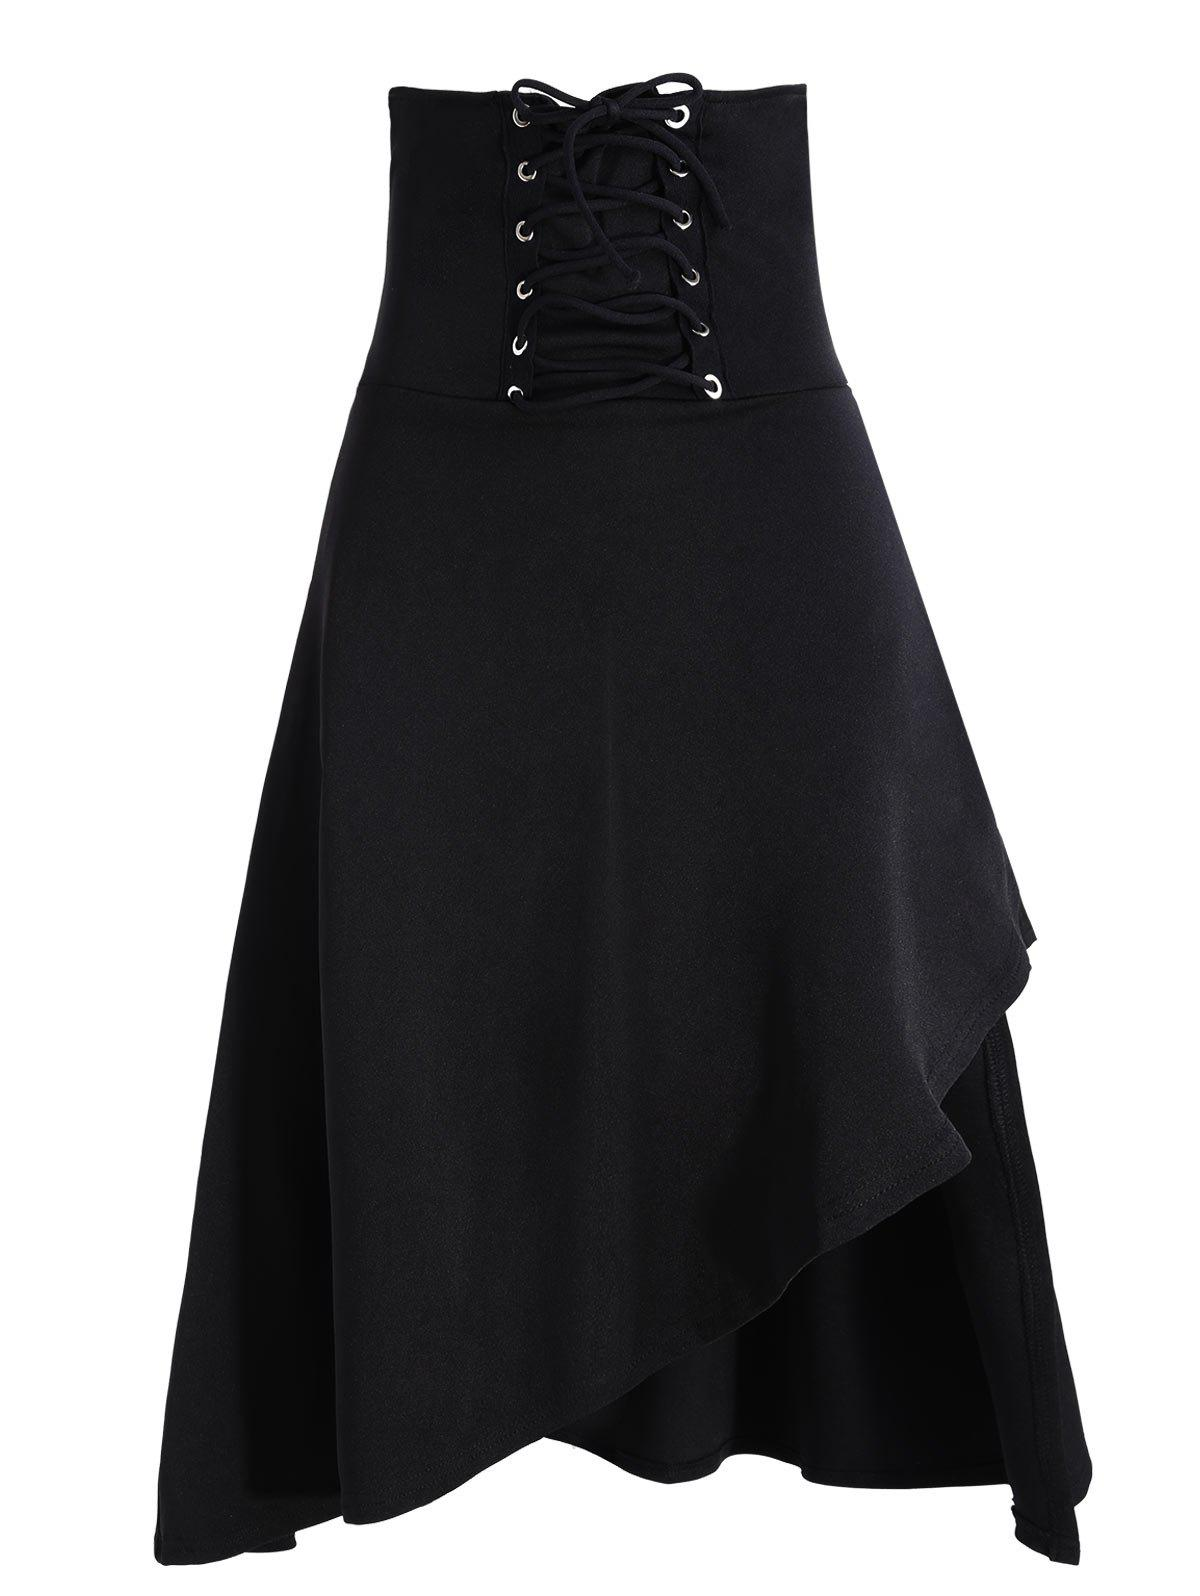 Buy Asymmetric Lace Up Gothic Long Skirt